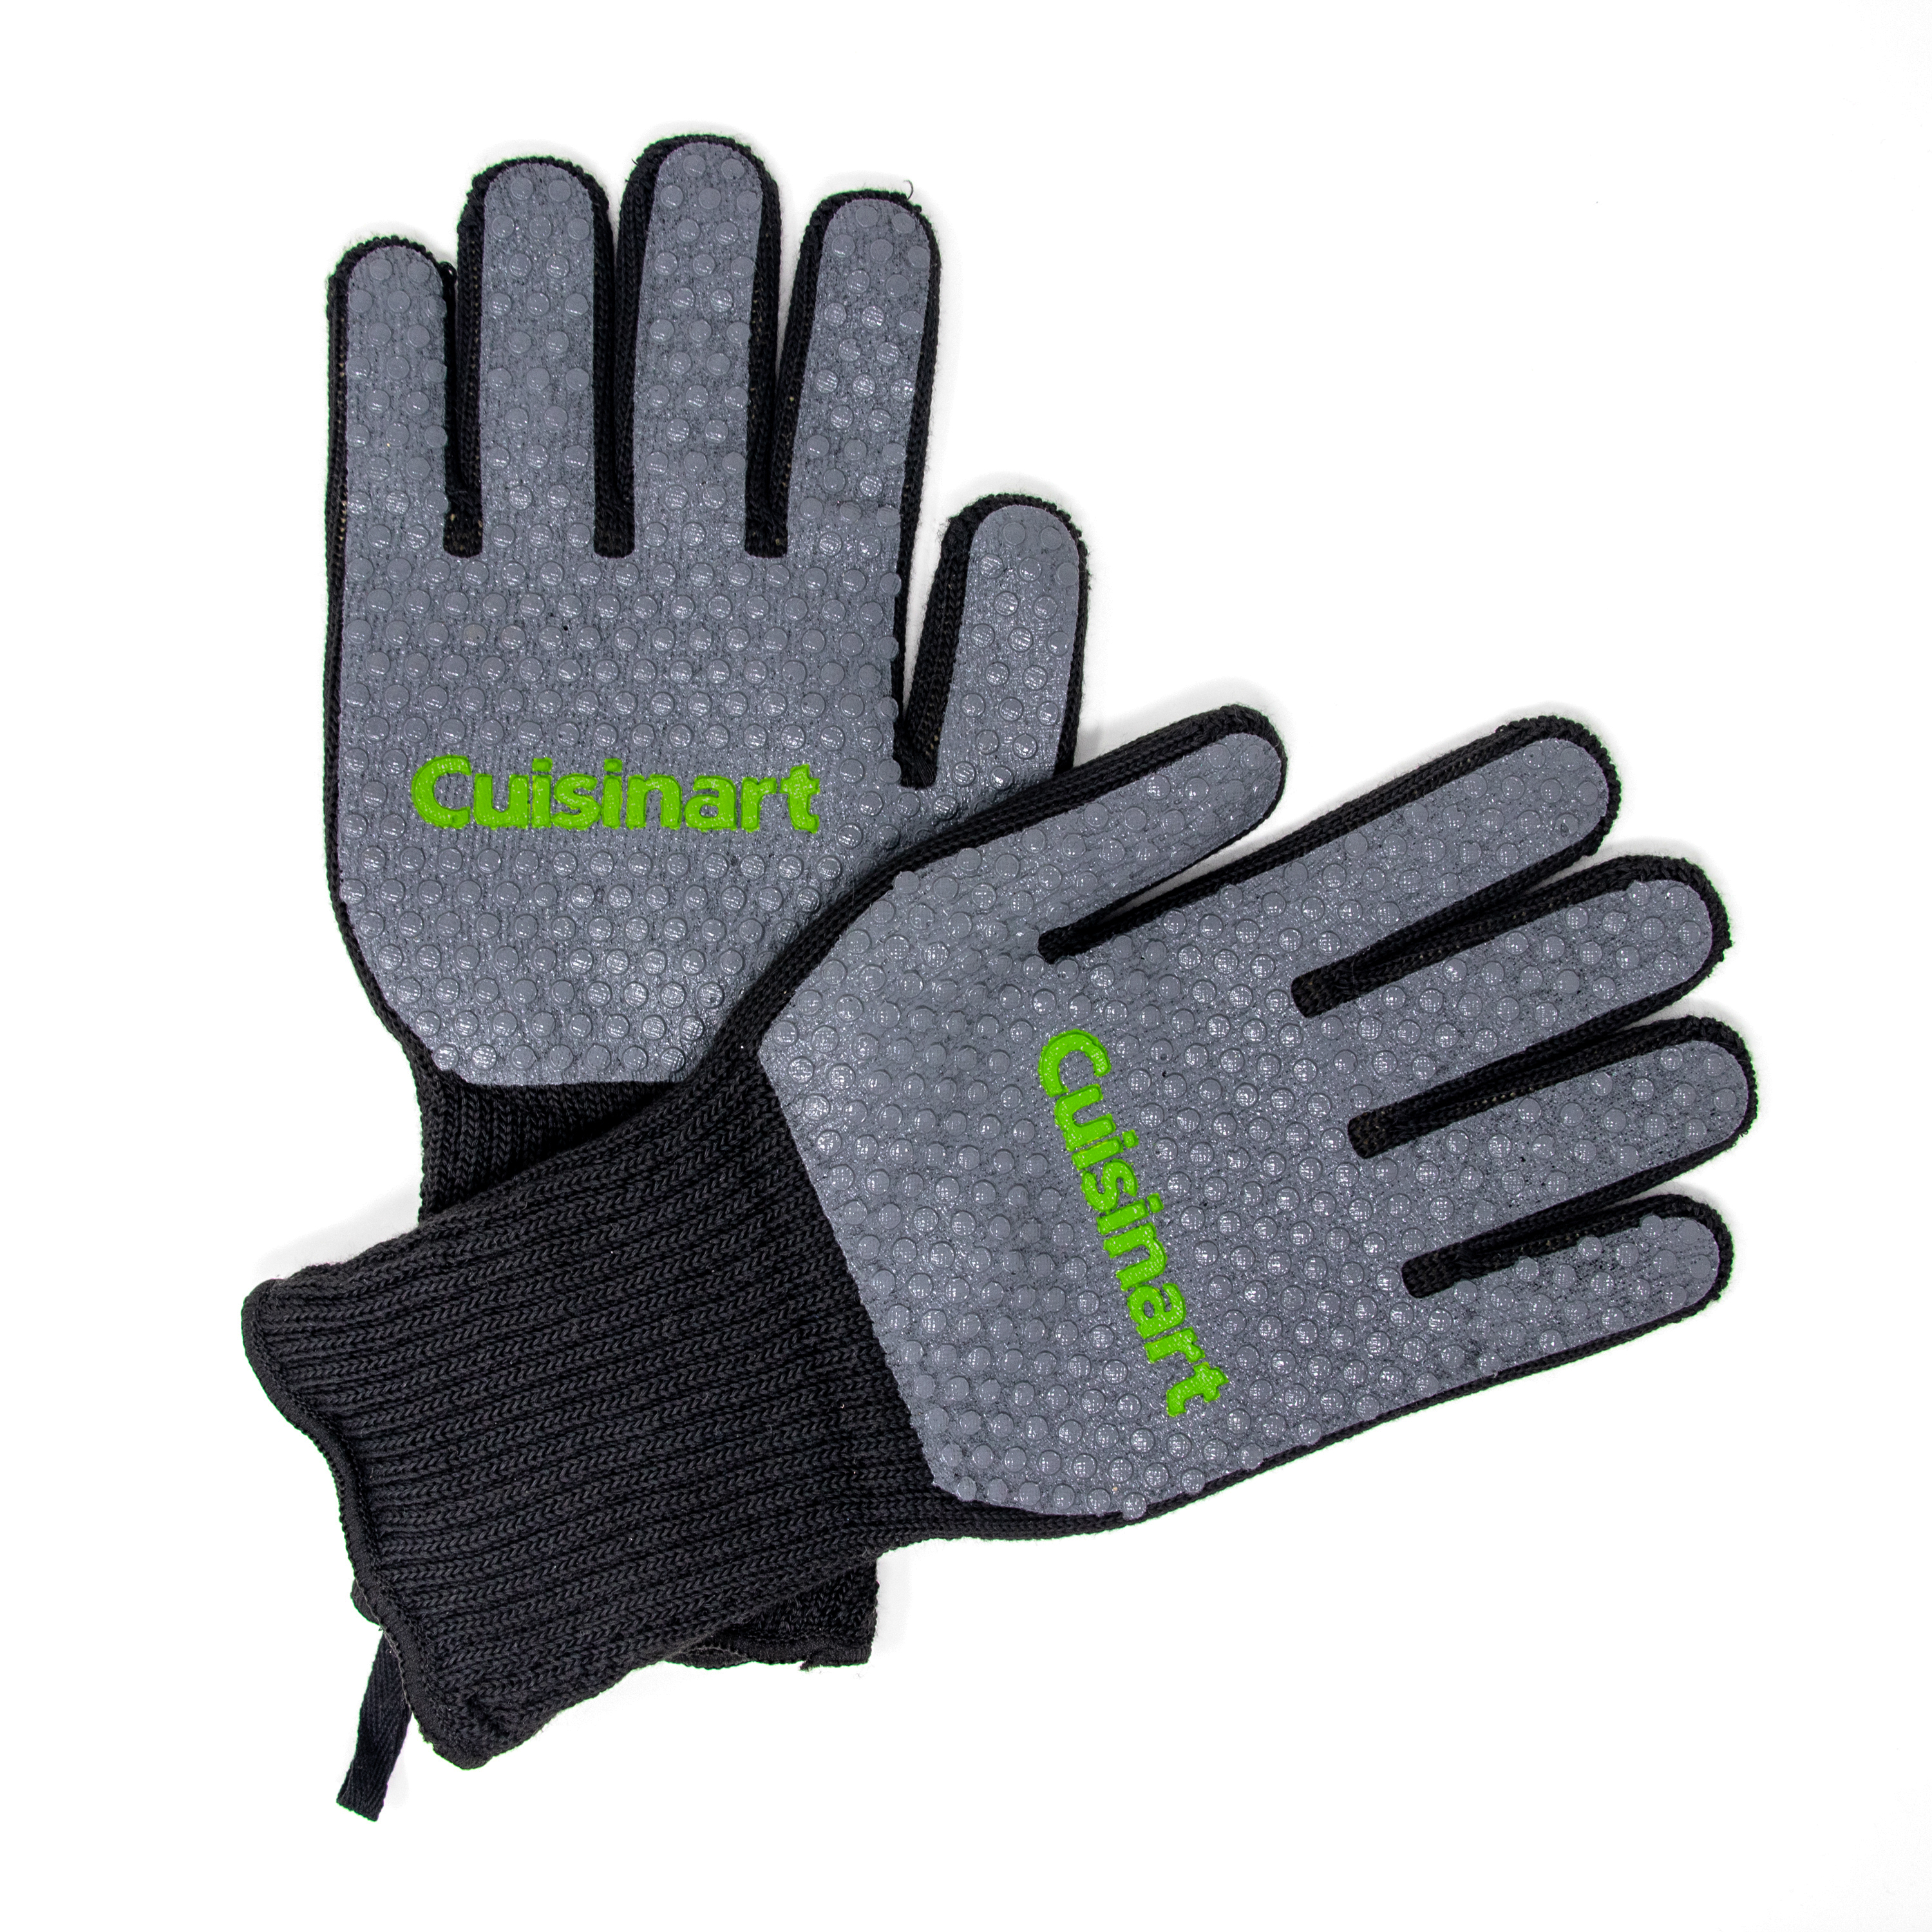 Full Coverage Heat Resistant Grill Gloves